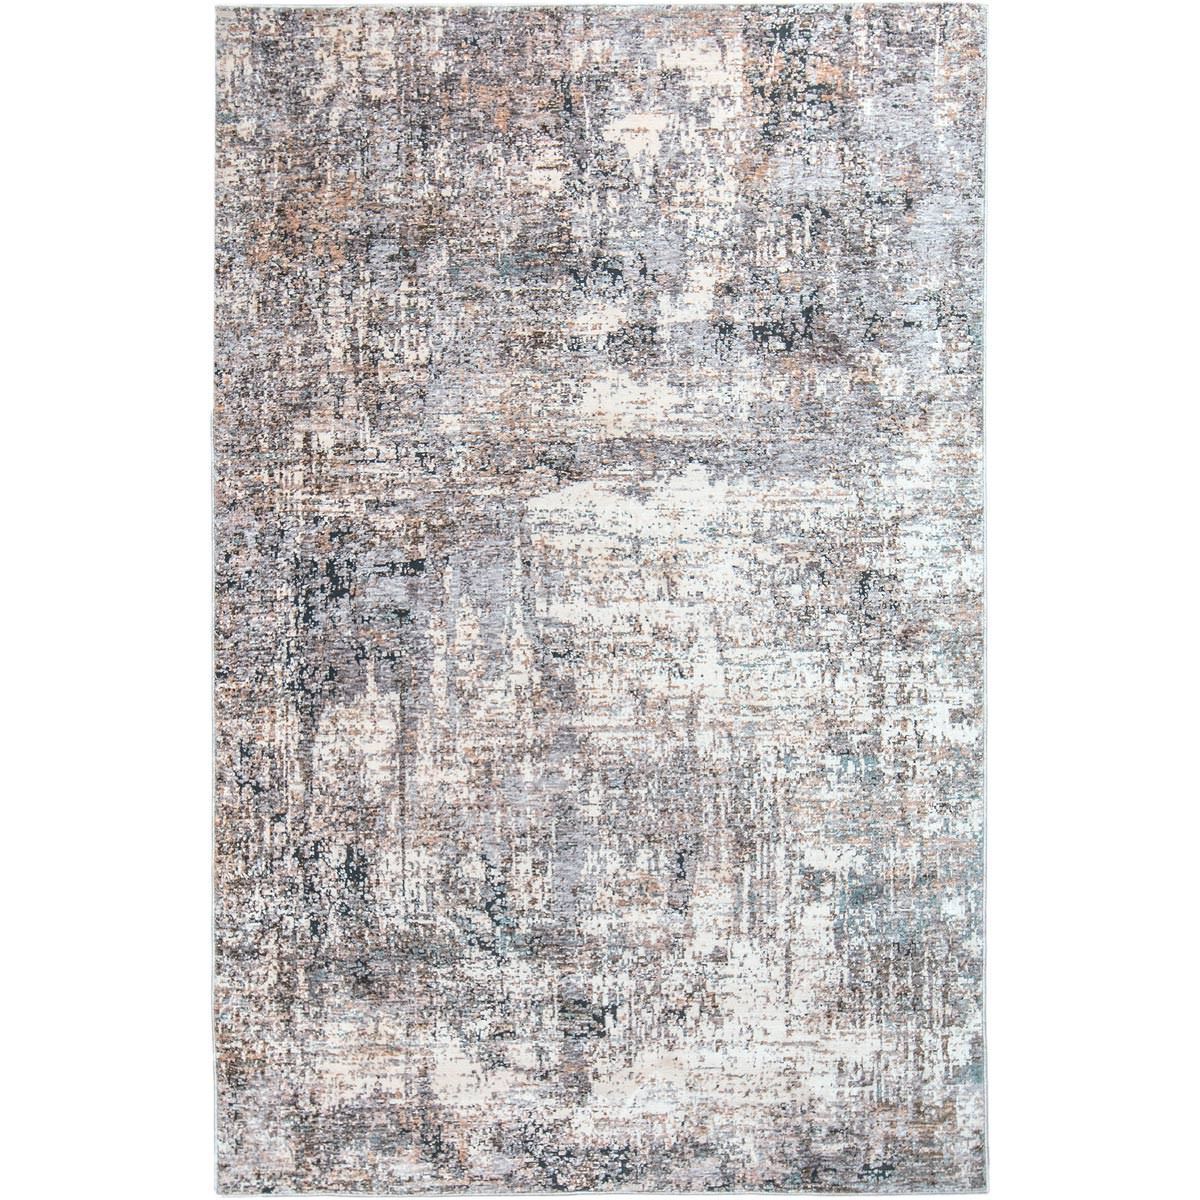 Miami Rug 04 Green/Blue/Beige 1